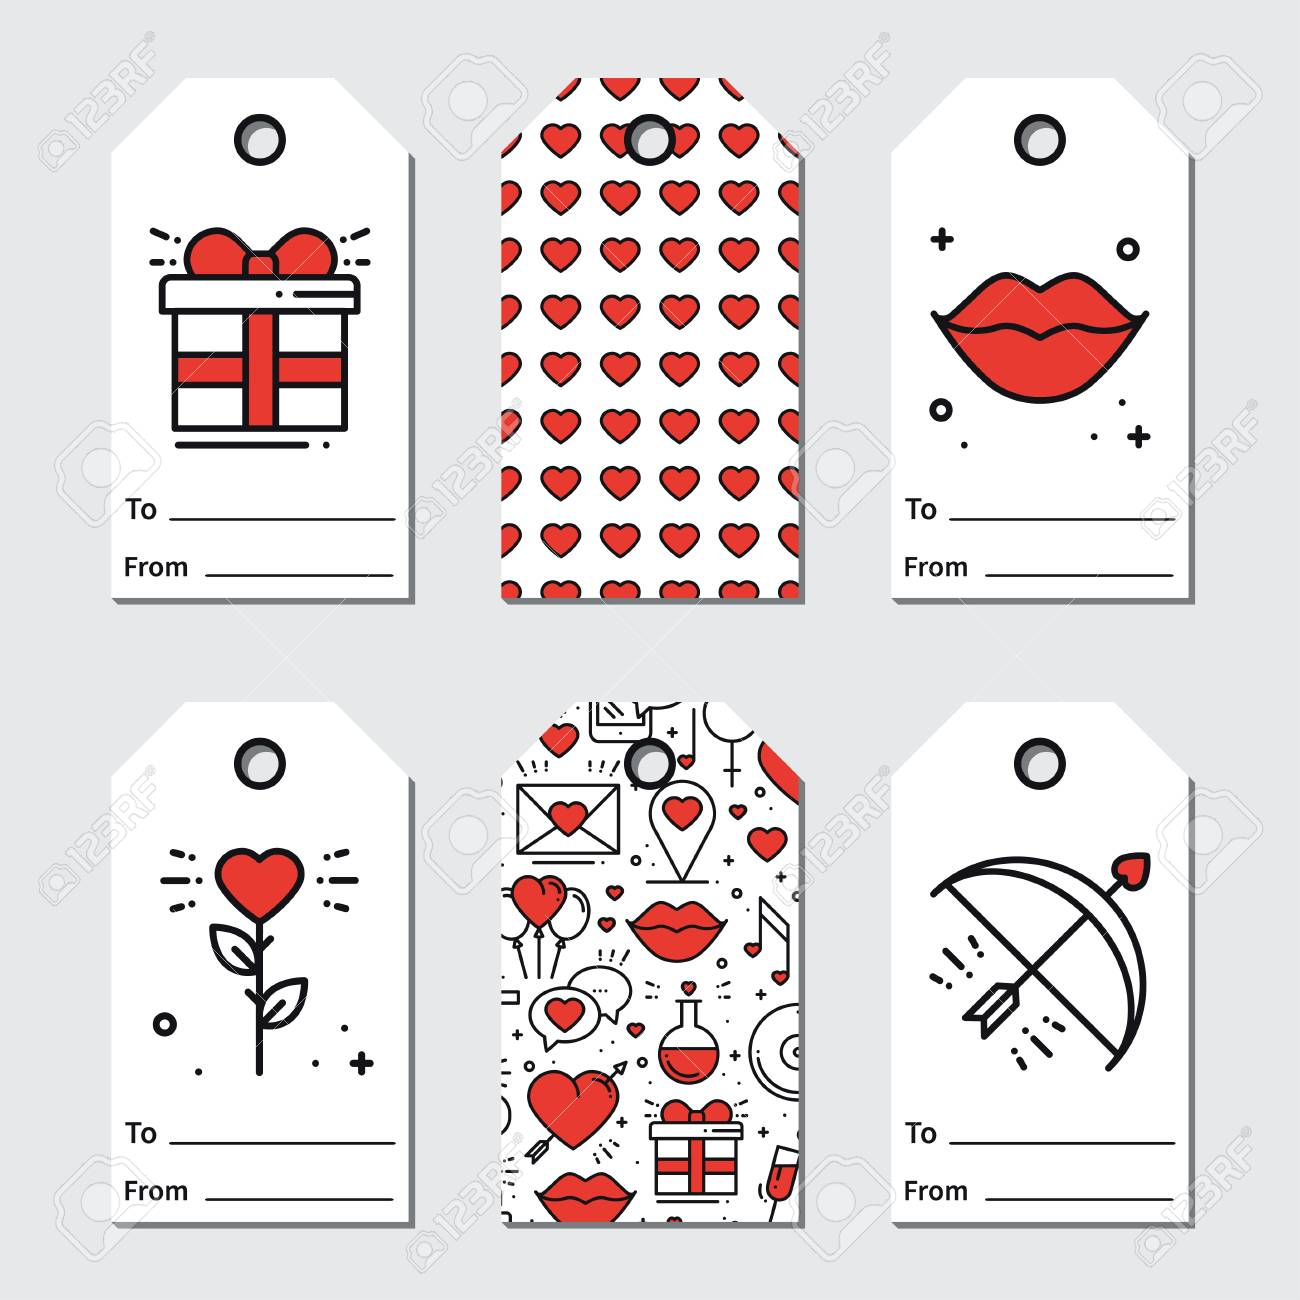 graphic about Valentine's Day Tags Printable known as St Valentines working day reward tags. Printable tags selection. Delight in,..